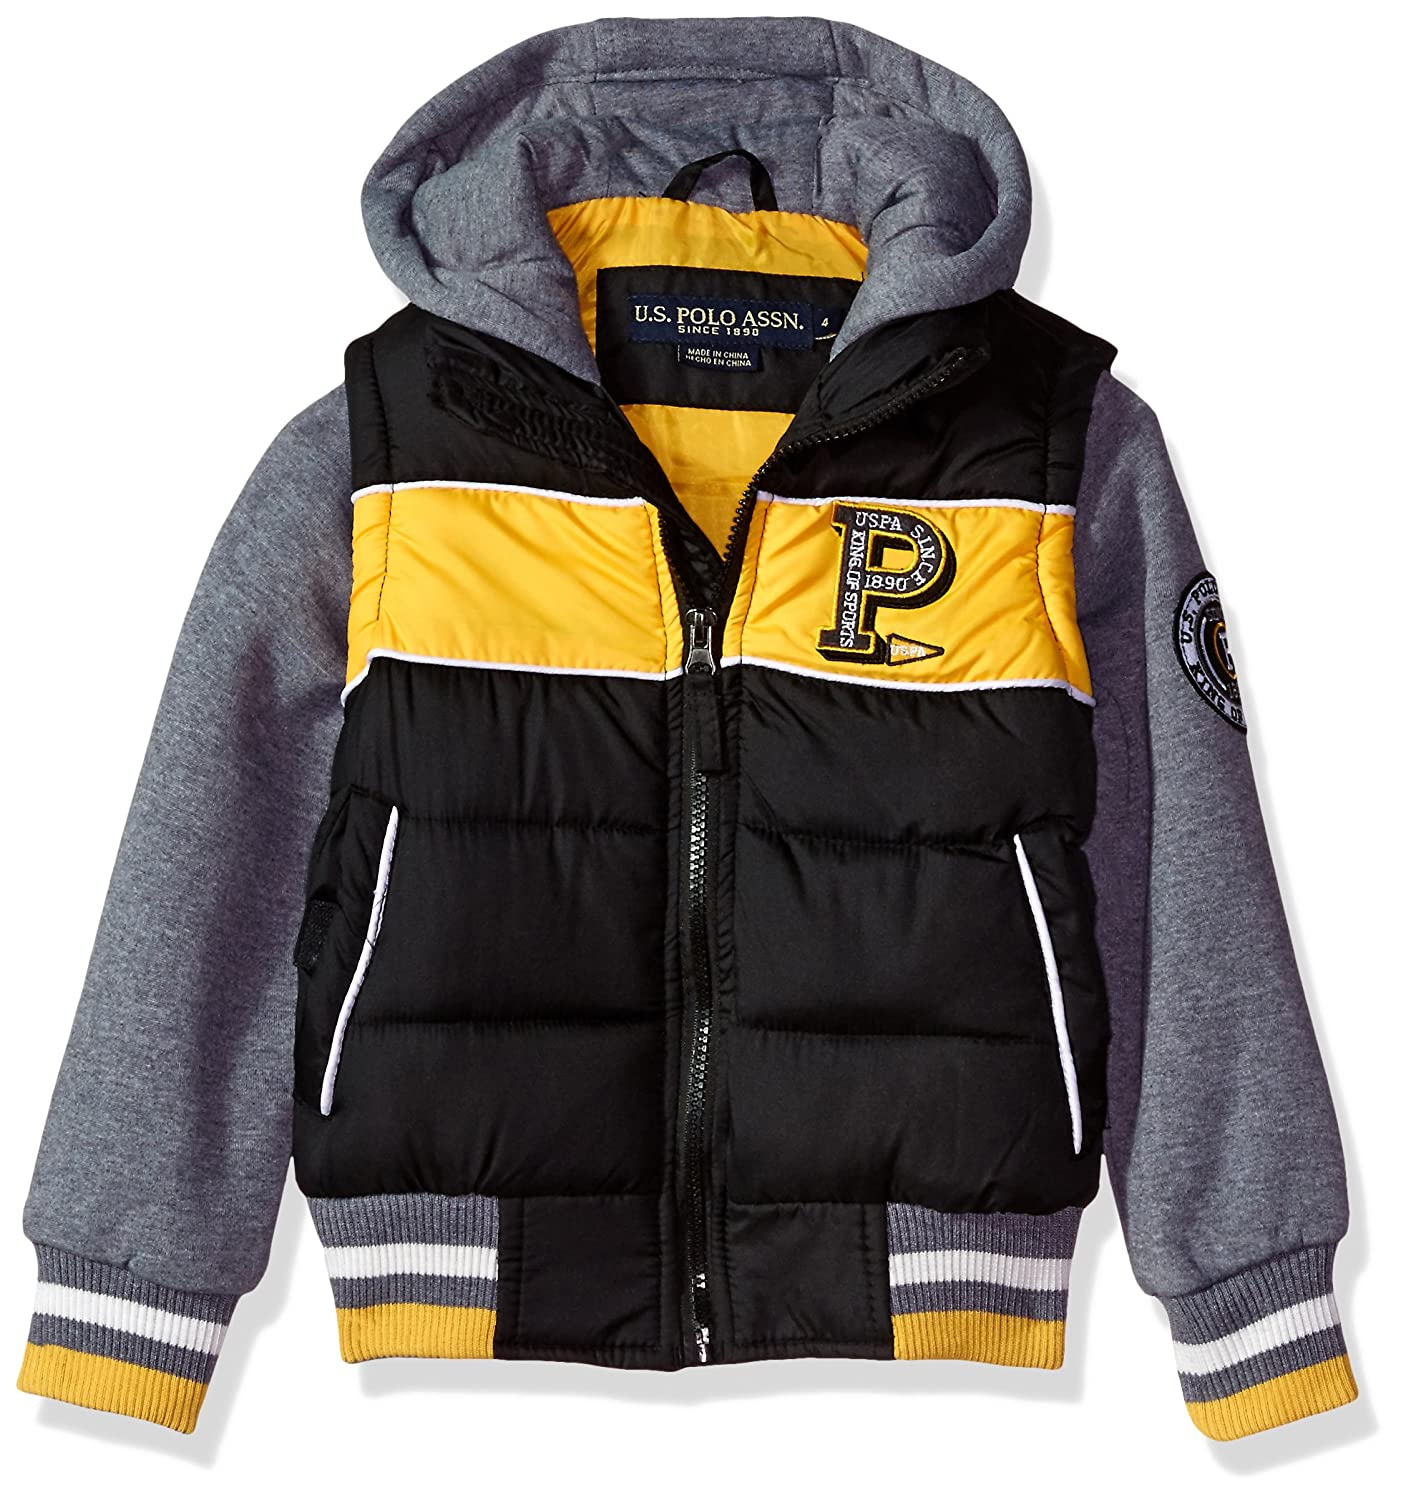 U.S. Polo Assn. Boys' Fashion Outerwear Jacket More Styles Available